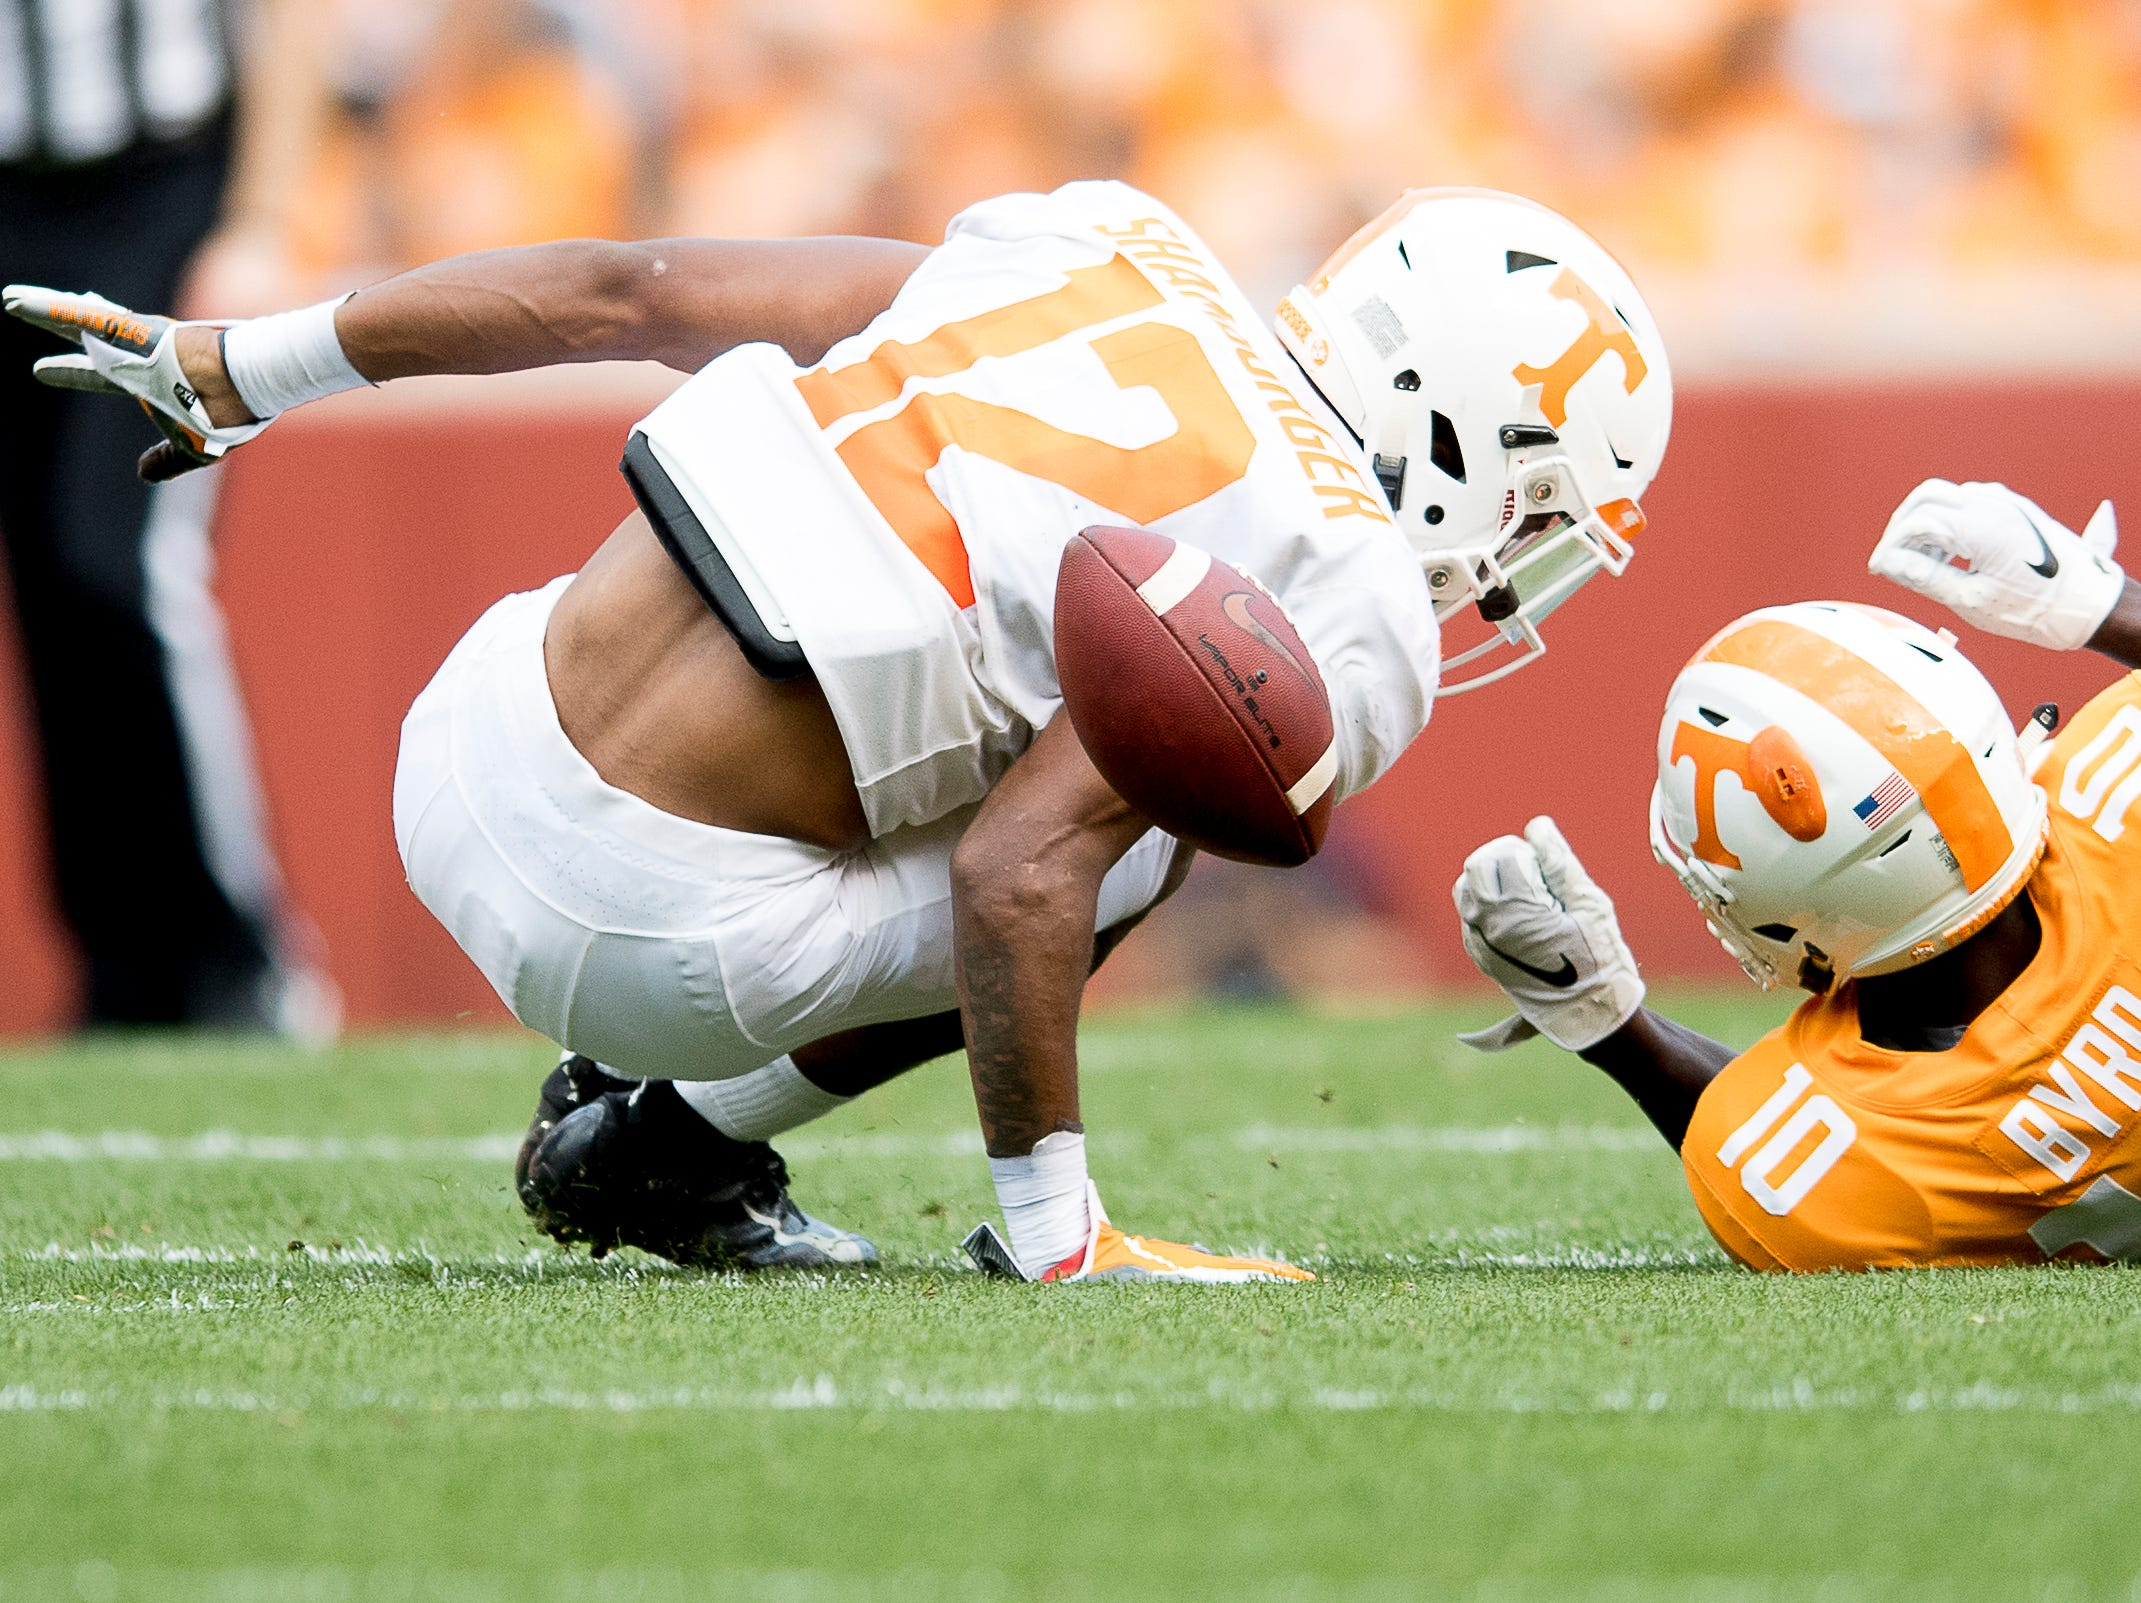 Tennessee defensive back Shawn Shamburger (12) loses the ball as Tennessee wide receiver Tyler Byrd (10) defends during the Tennessee Spring Game at Neyland Stadium in Knoxville, Tennessee on Saturday, April 13, 2019.